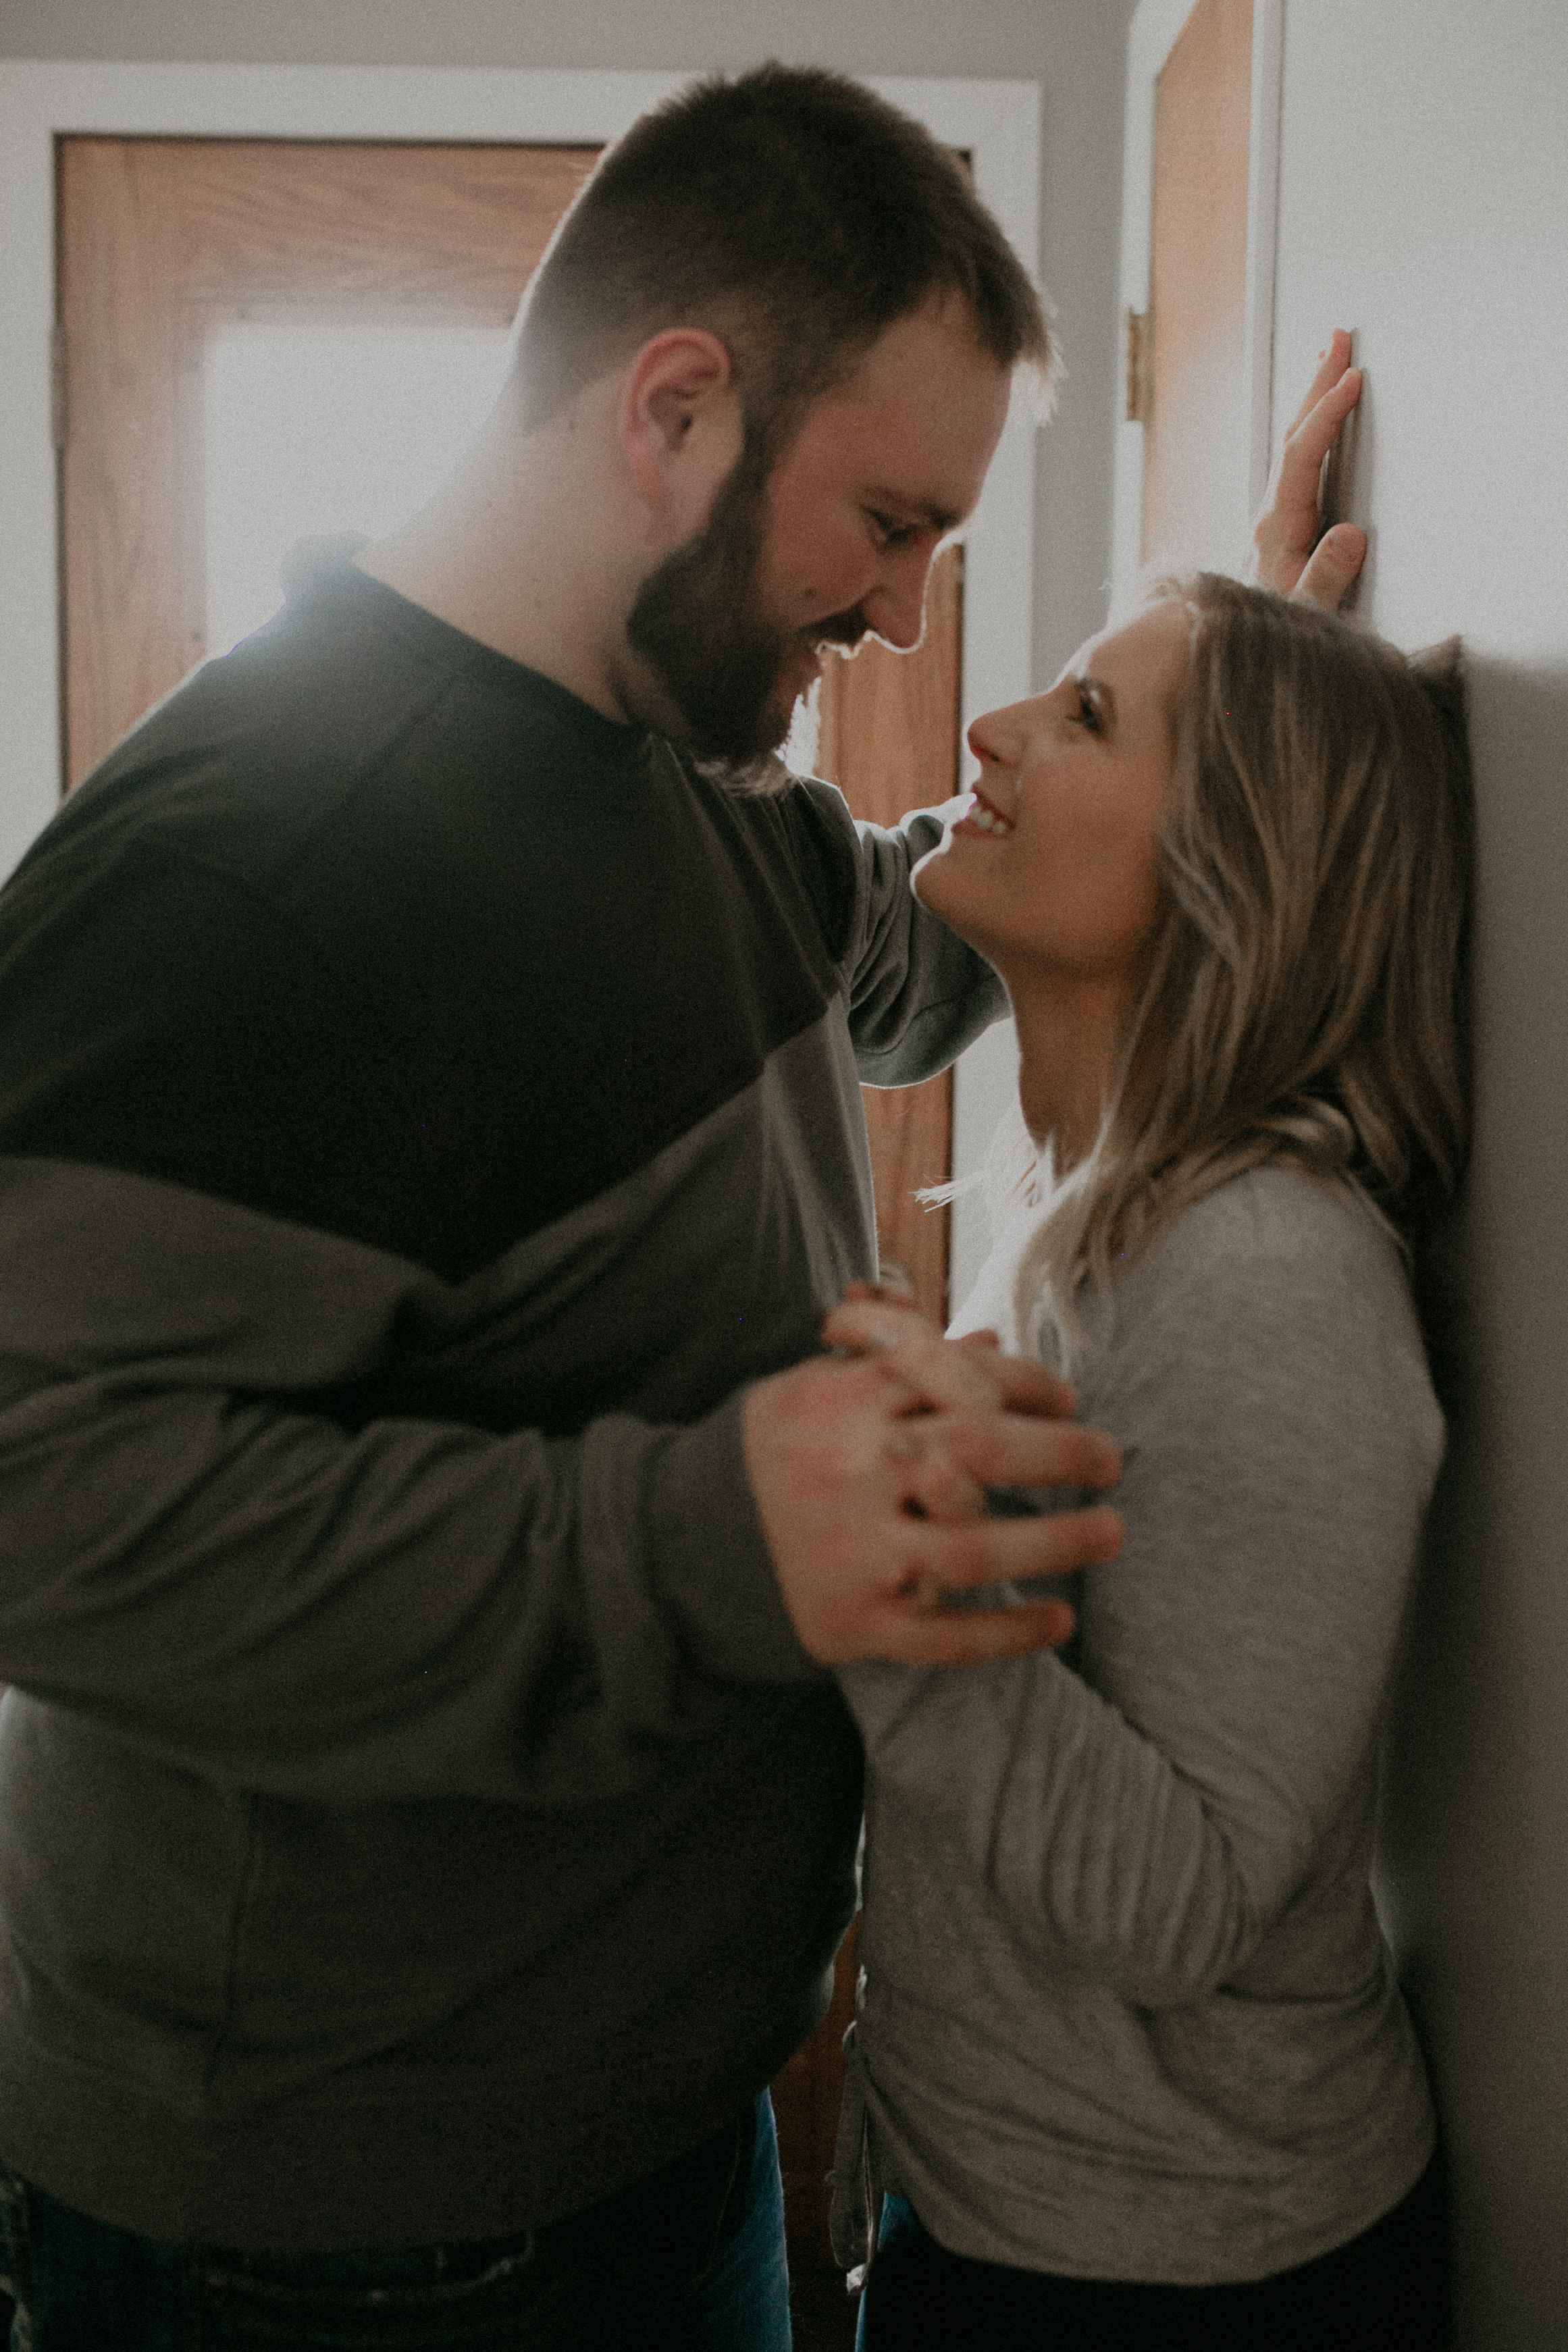 fiance lovingly stares at her soon-to-be husband during engagement photos in their home